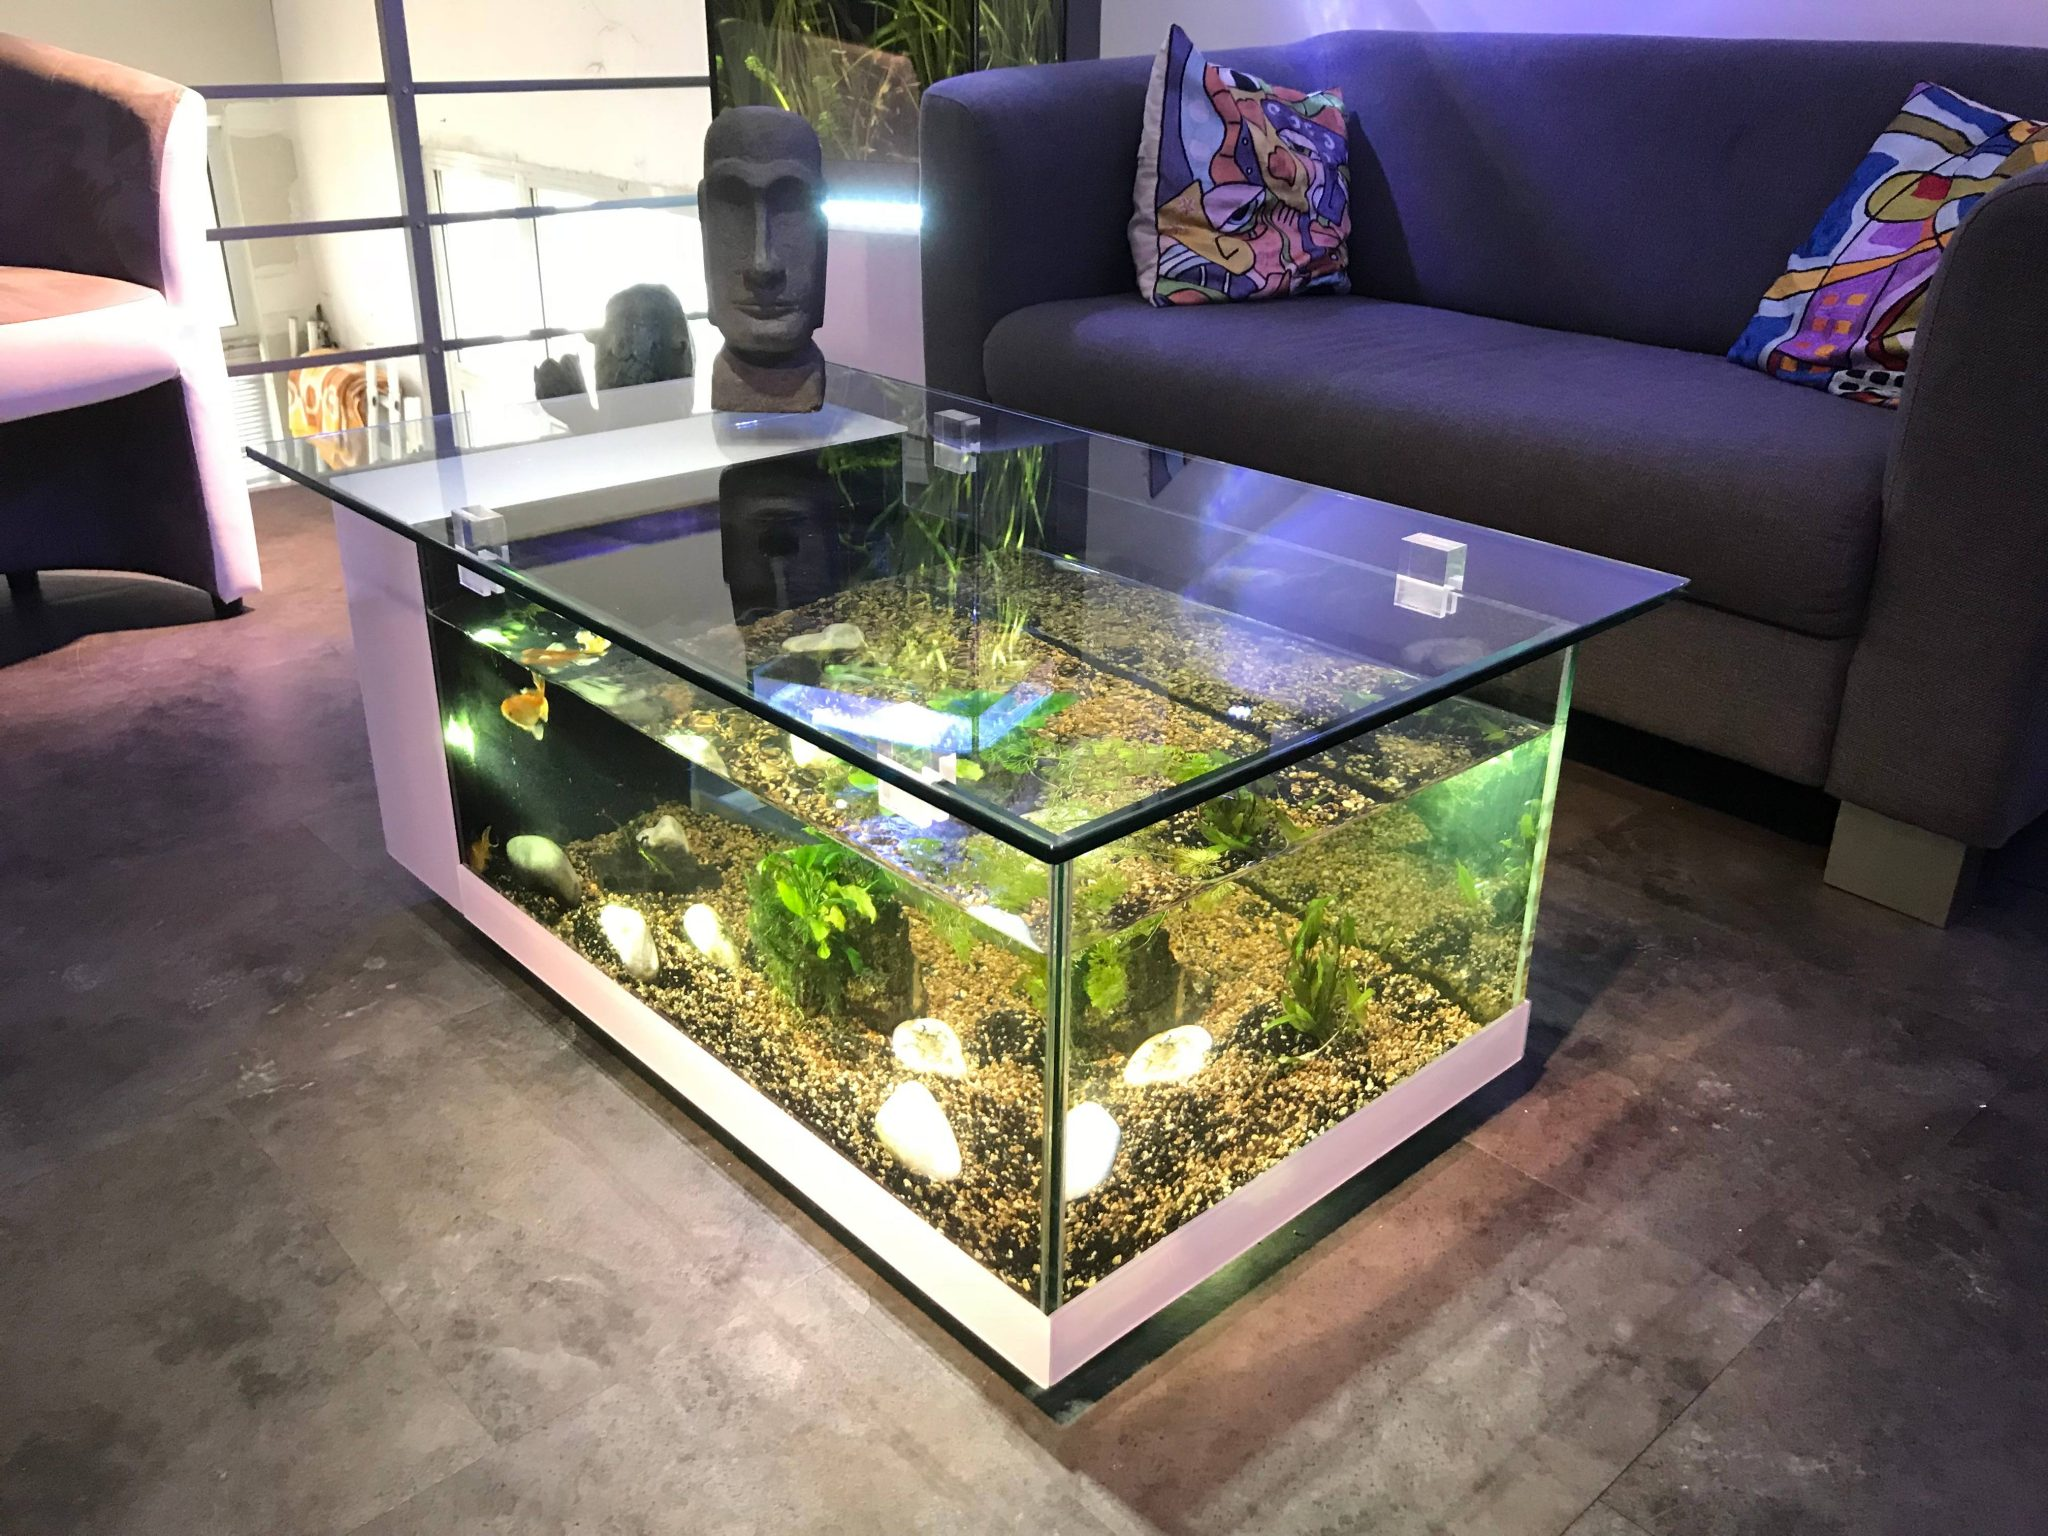 - 🥇The Best Fish Tank Coffee Table Aquarium In 2020 - CHAMPAGNE REEF